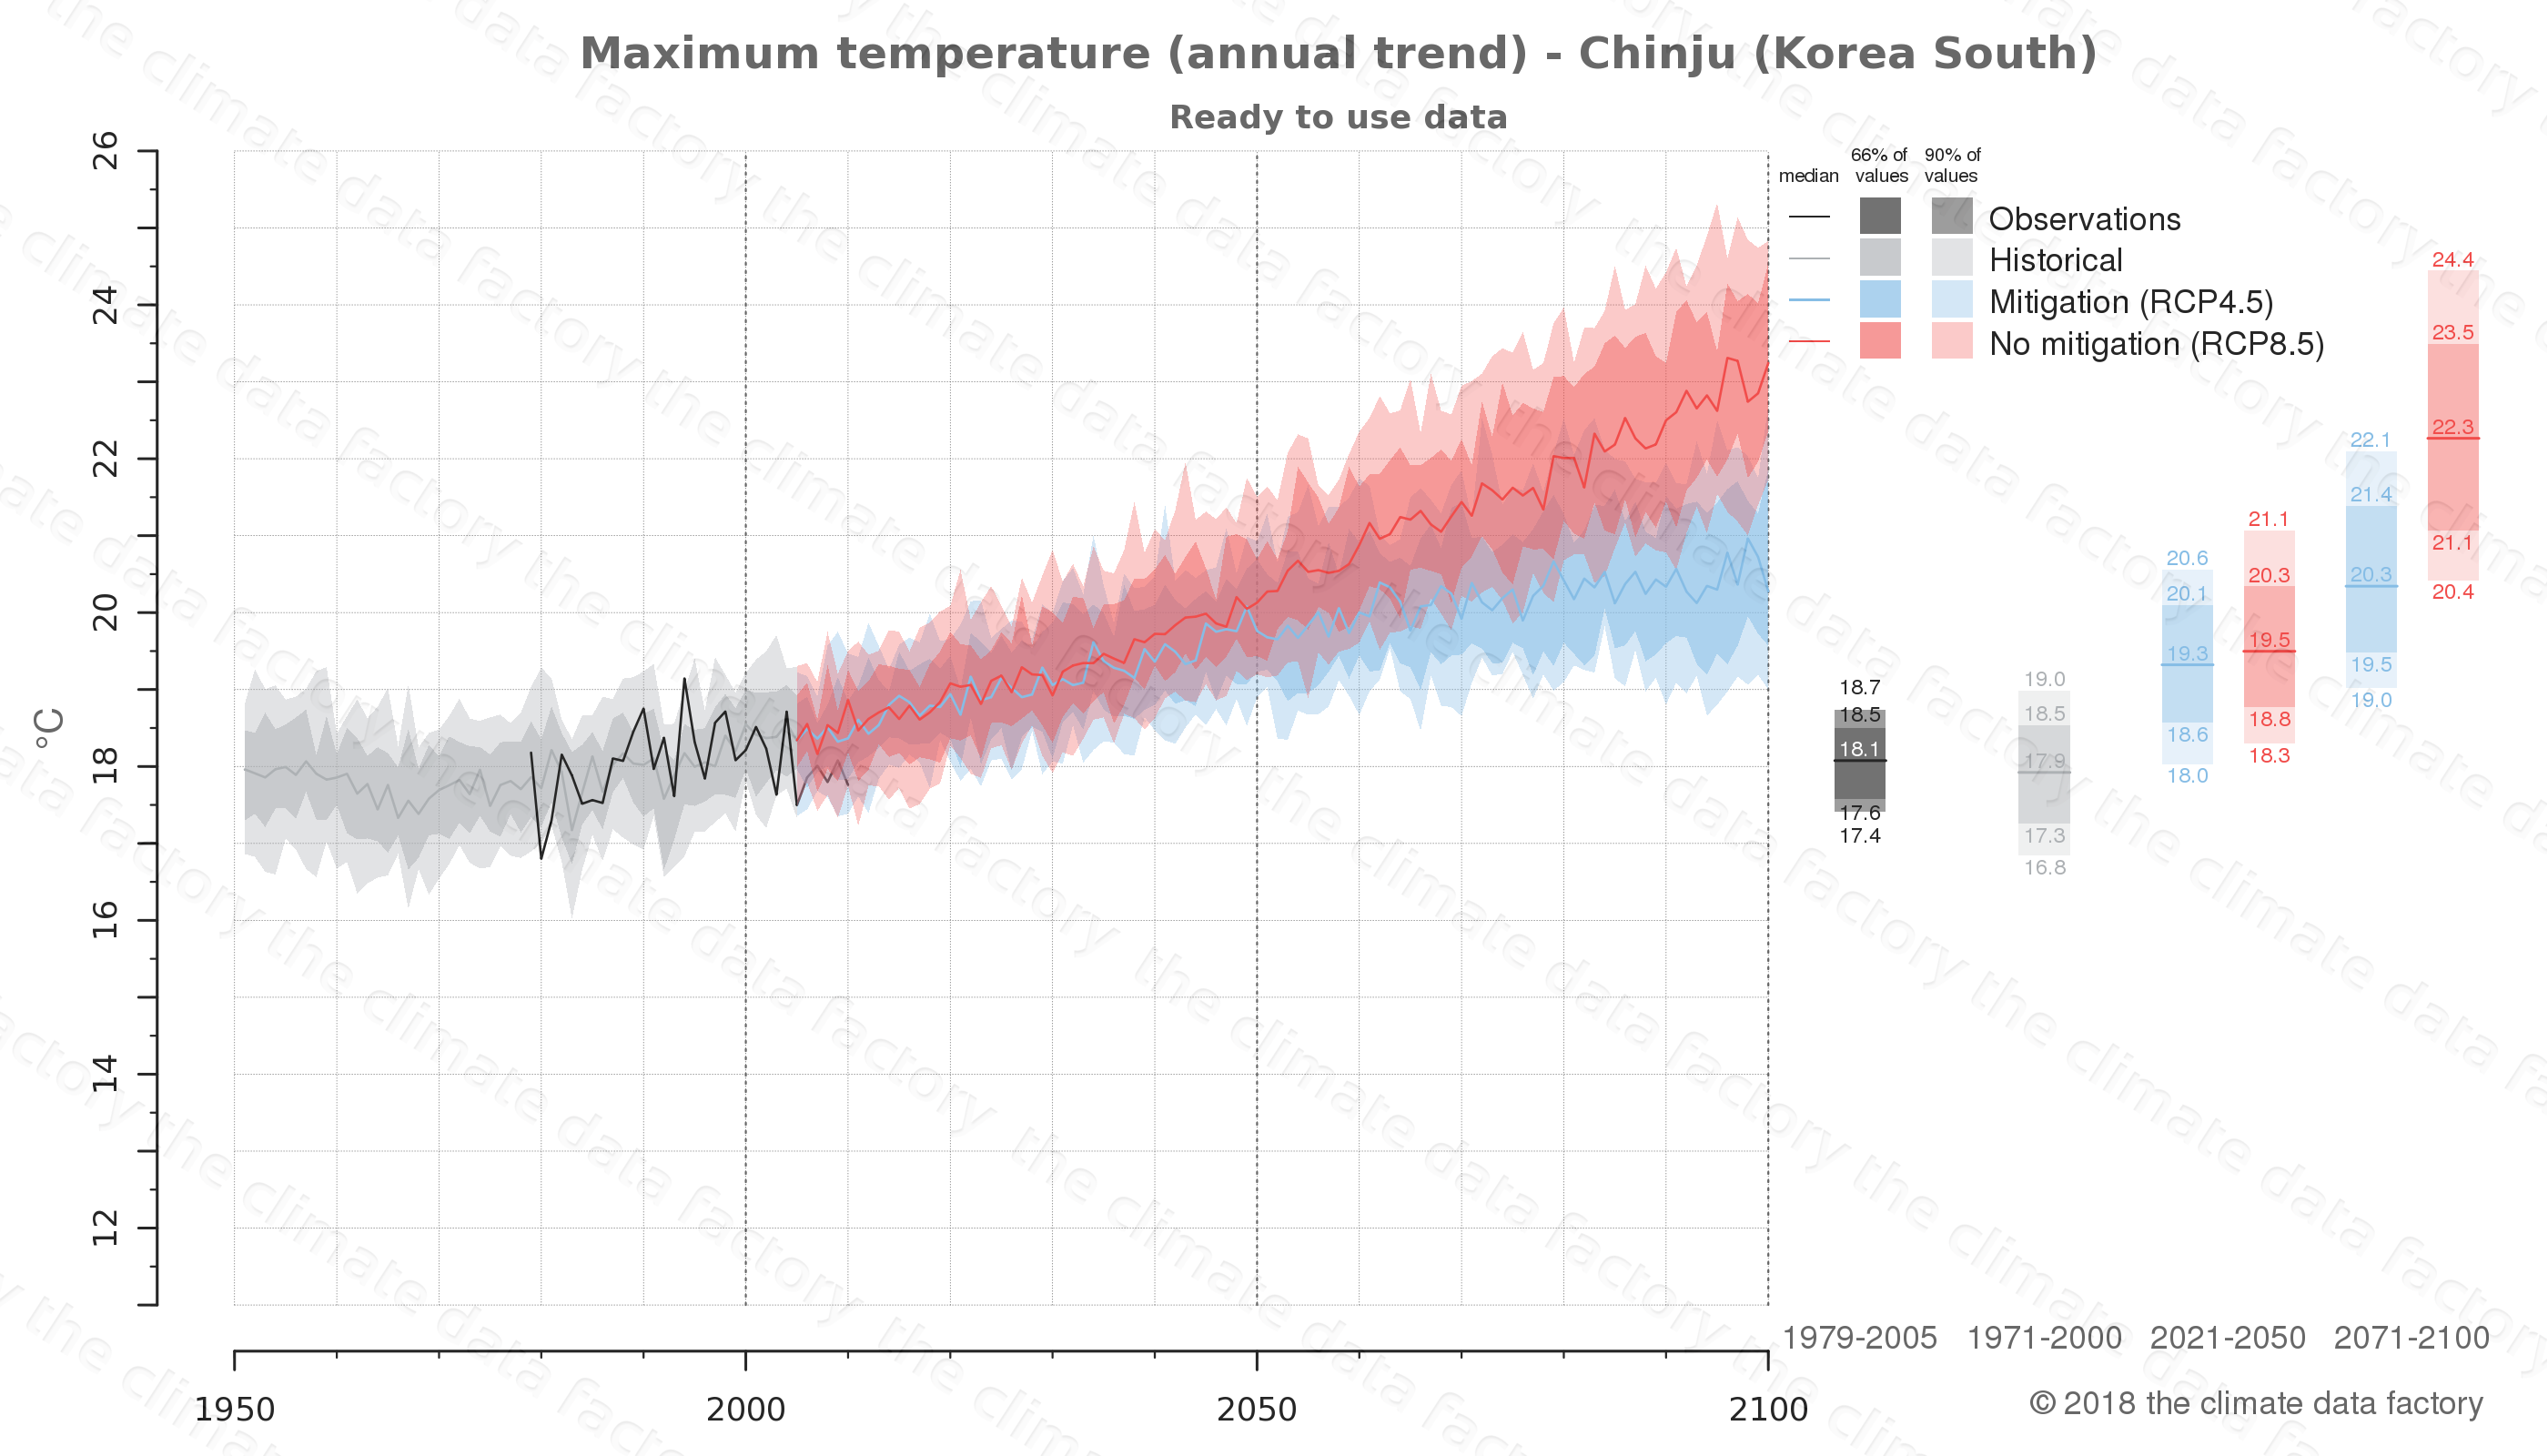 climate change data policy adaptation climate graph city data maximum-temperature chinju south korea